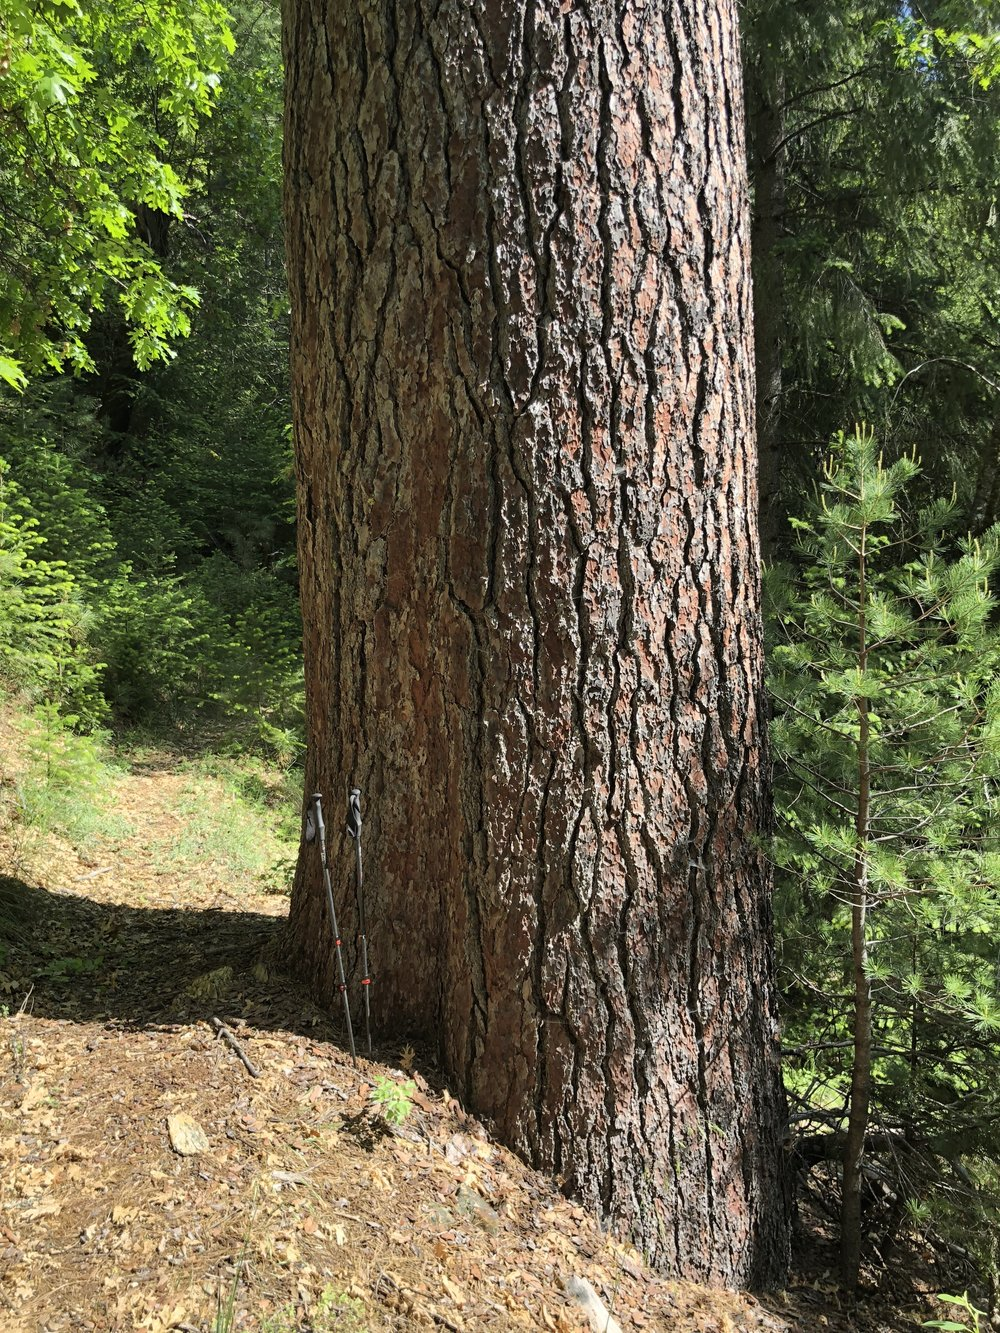 See my hiking poles to get a perspective for size of tree